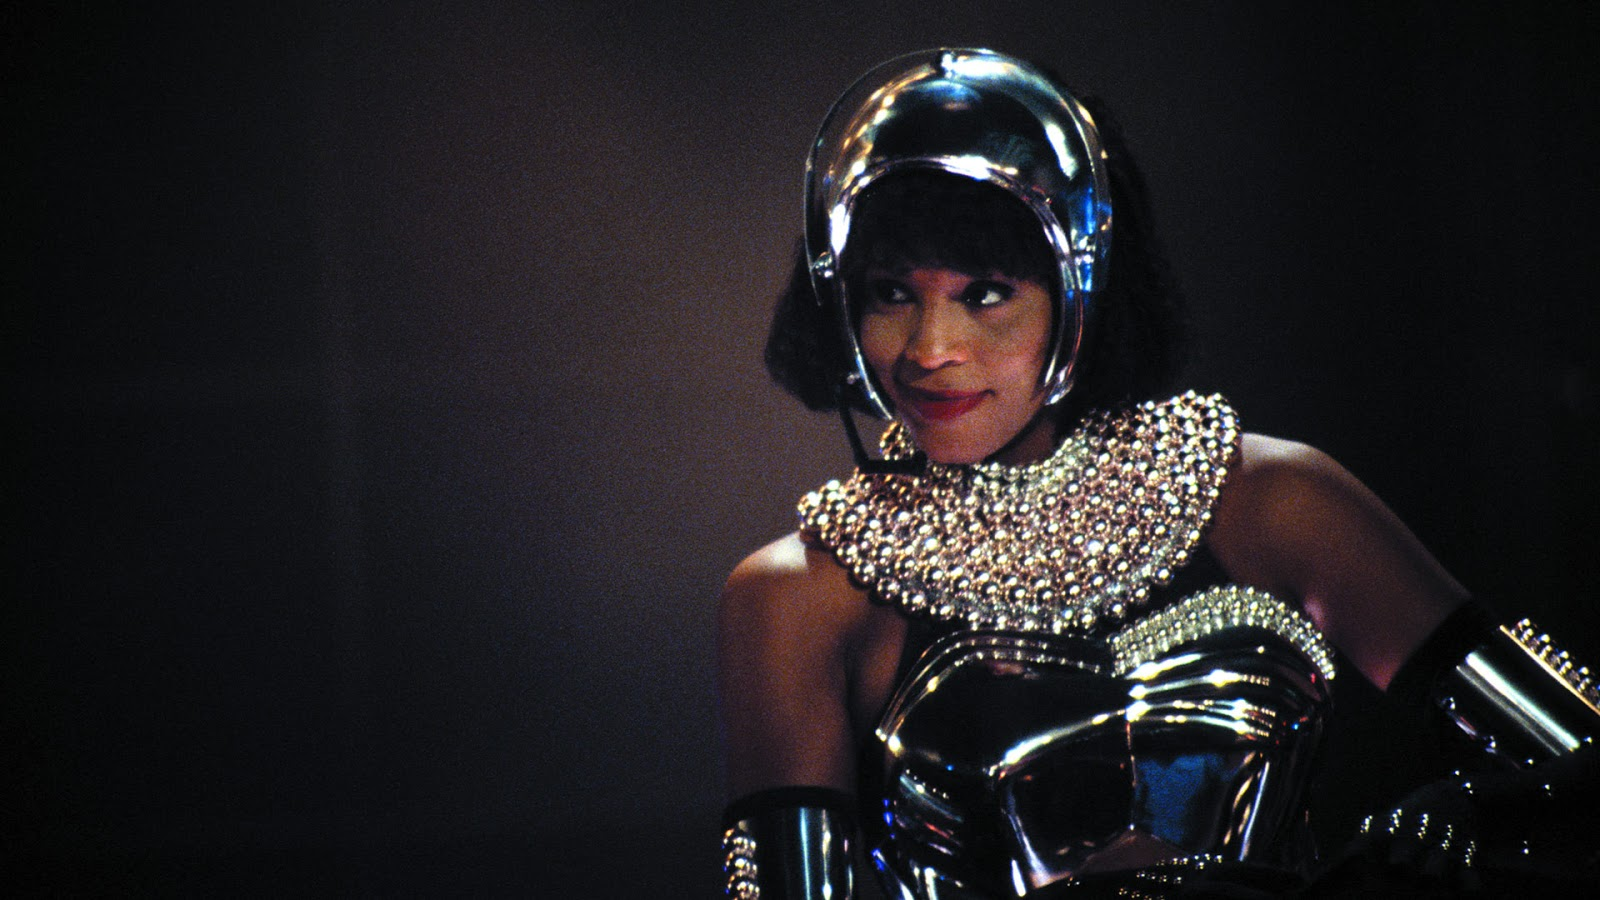 CinéFemme - Annakarinaland: Whitney Houston: Queen of the ...